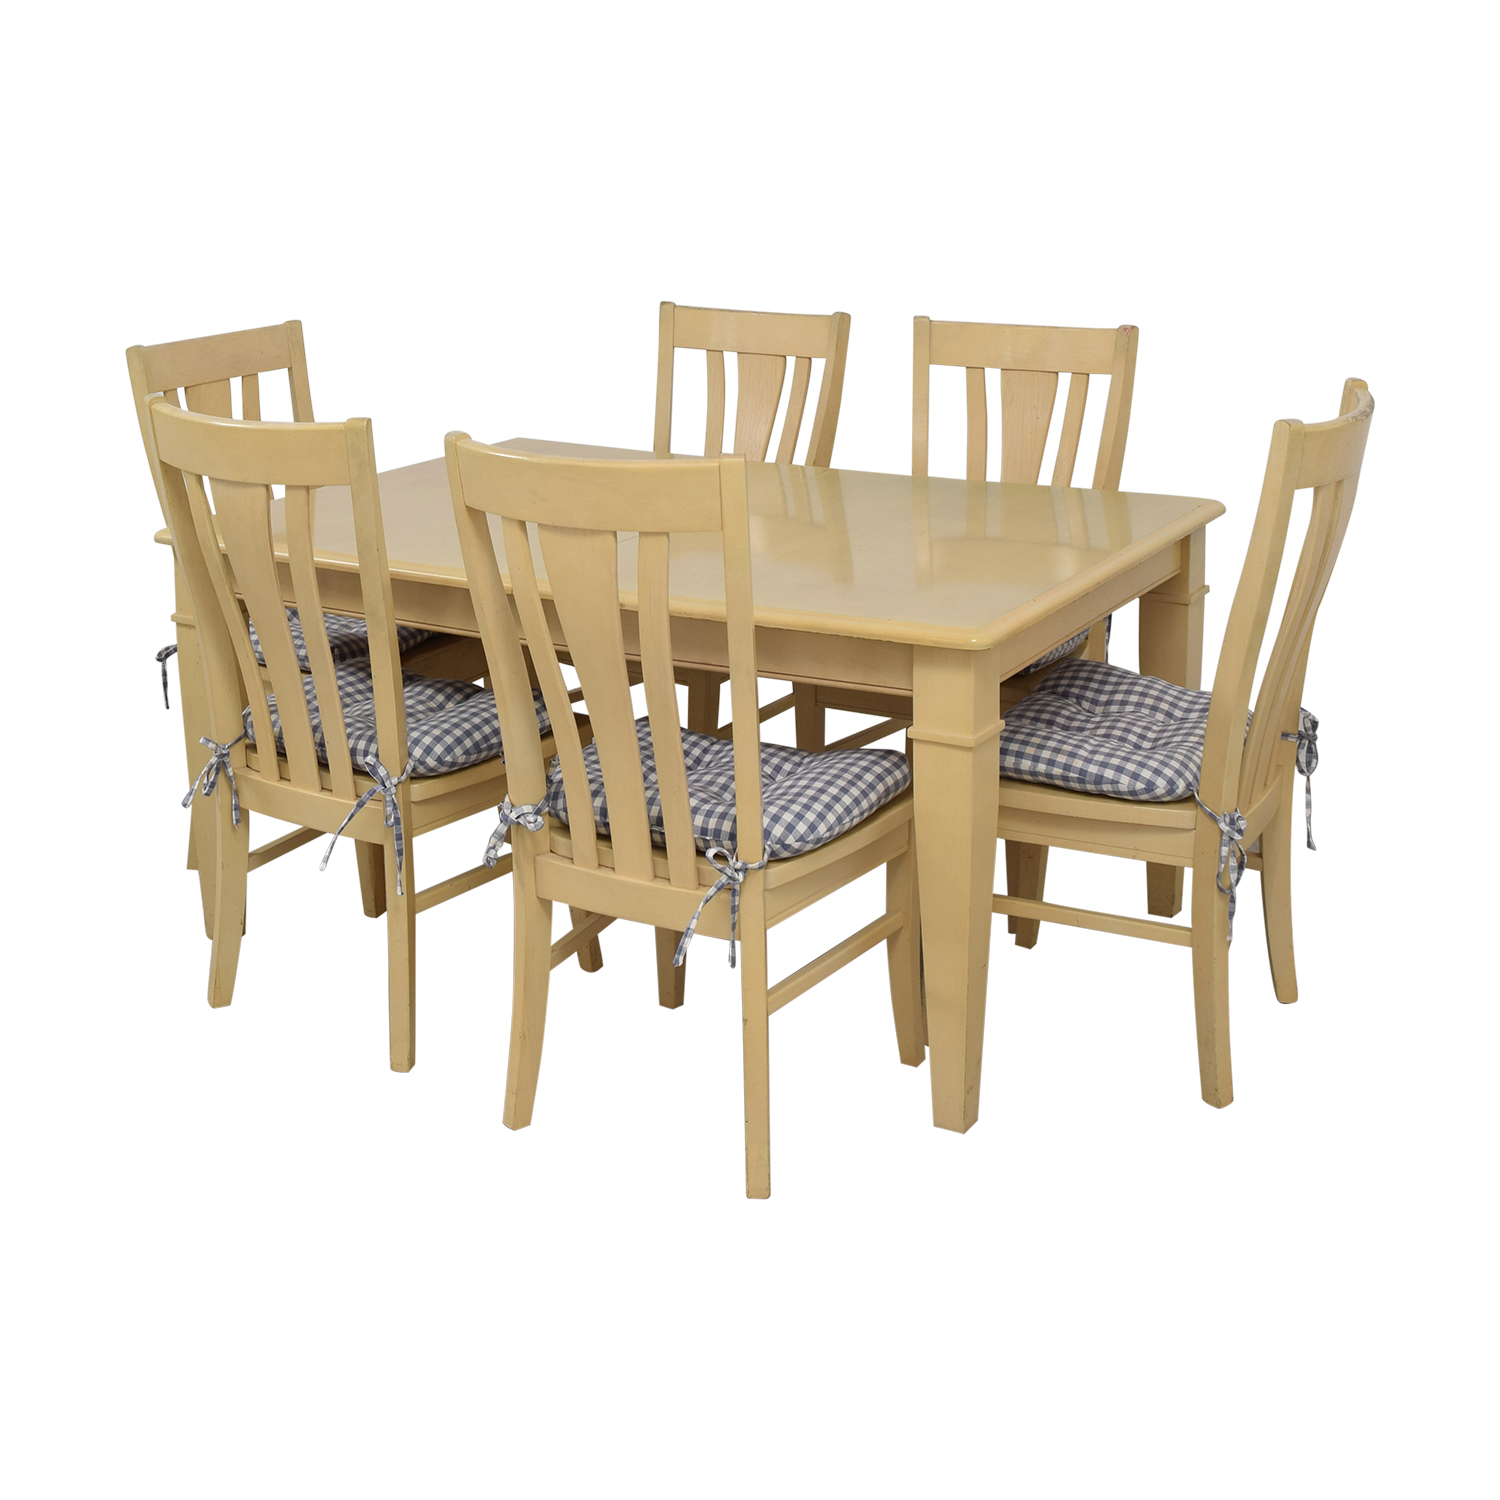 Bassett Furniture Blonde Wood Dining Set with Seat Cushions / Dining Sets